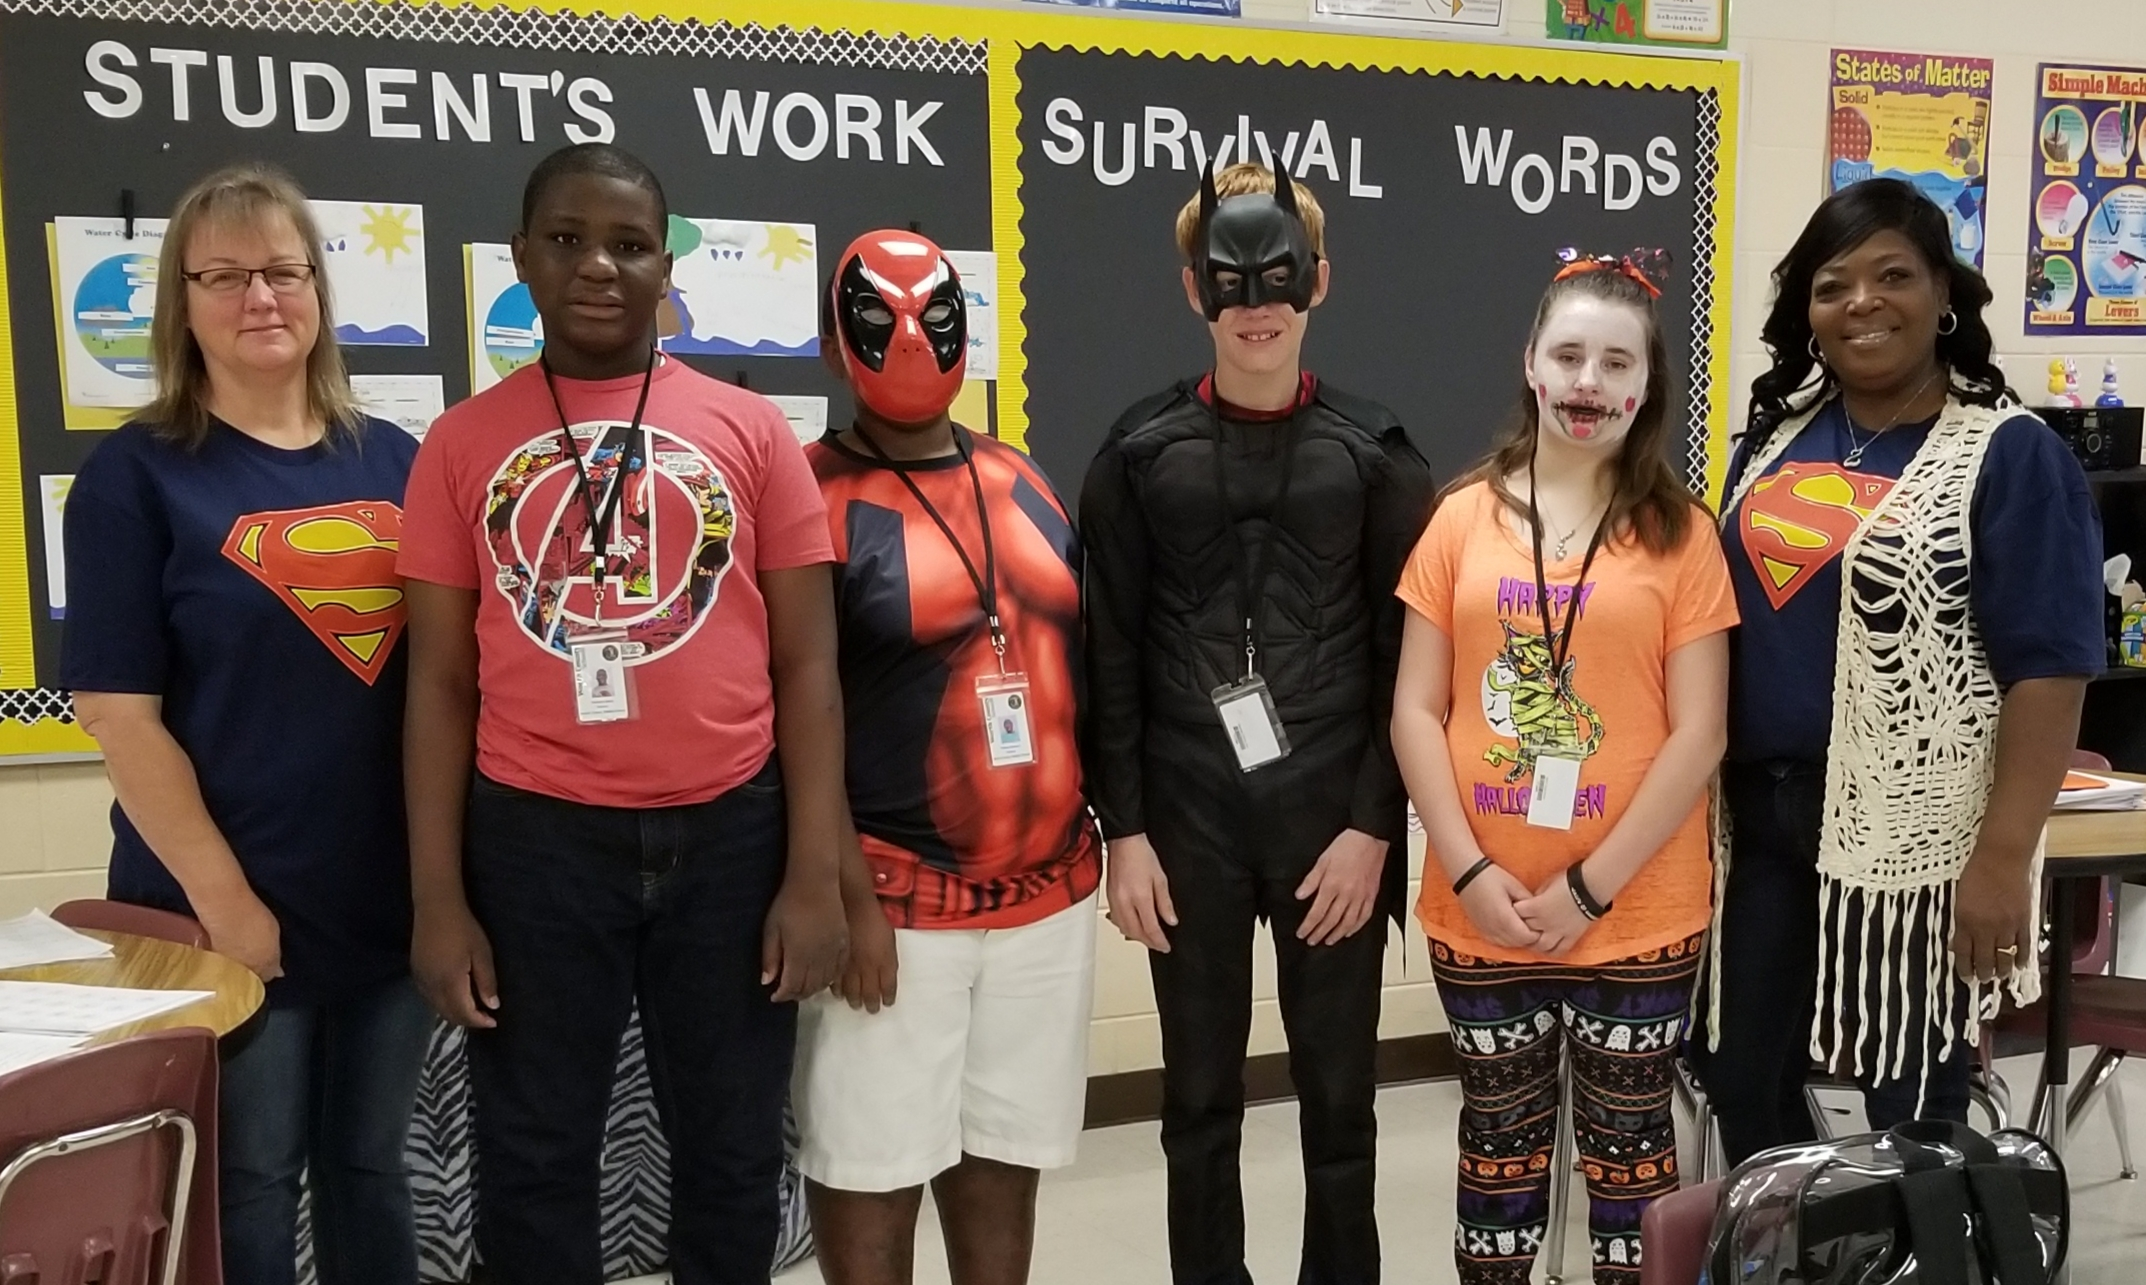 Red Ribbon Week - Wednesday - Real Heroes Don't Do Drugs or Bully - Super Hero Day